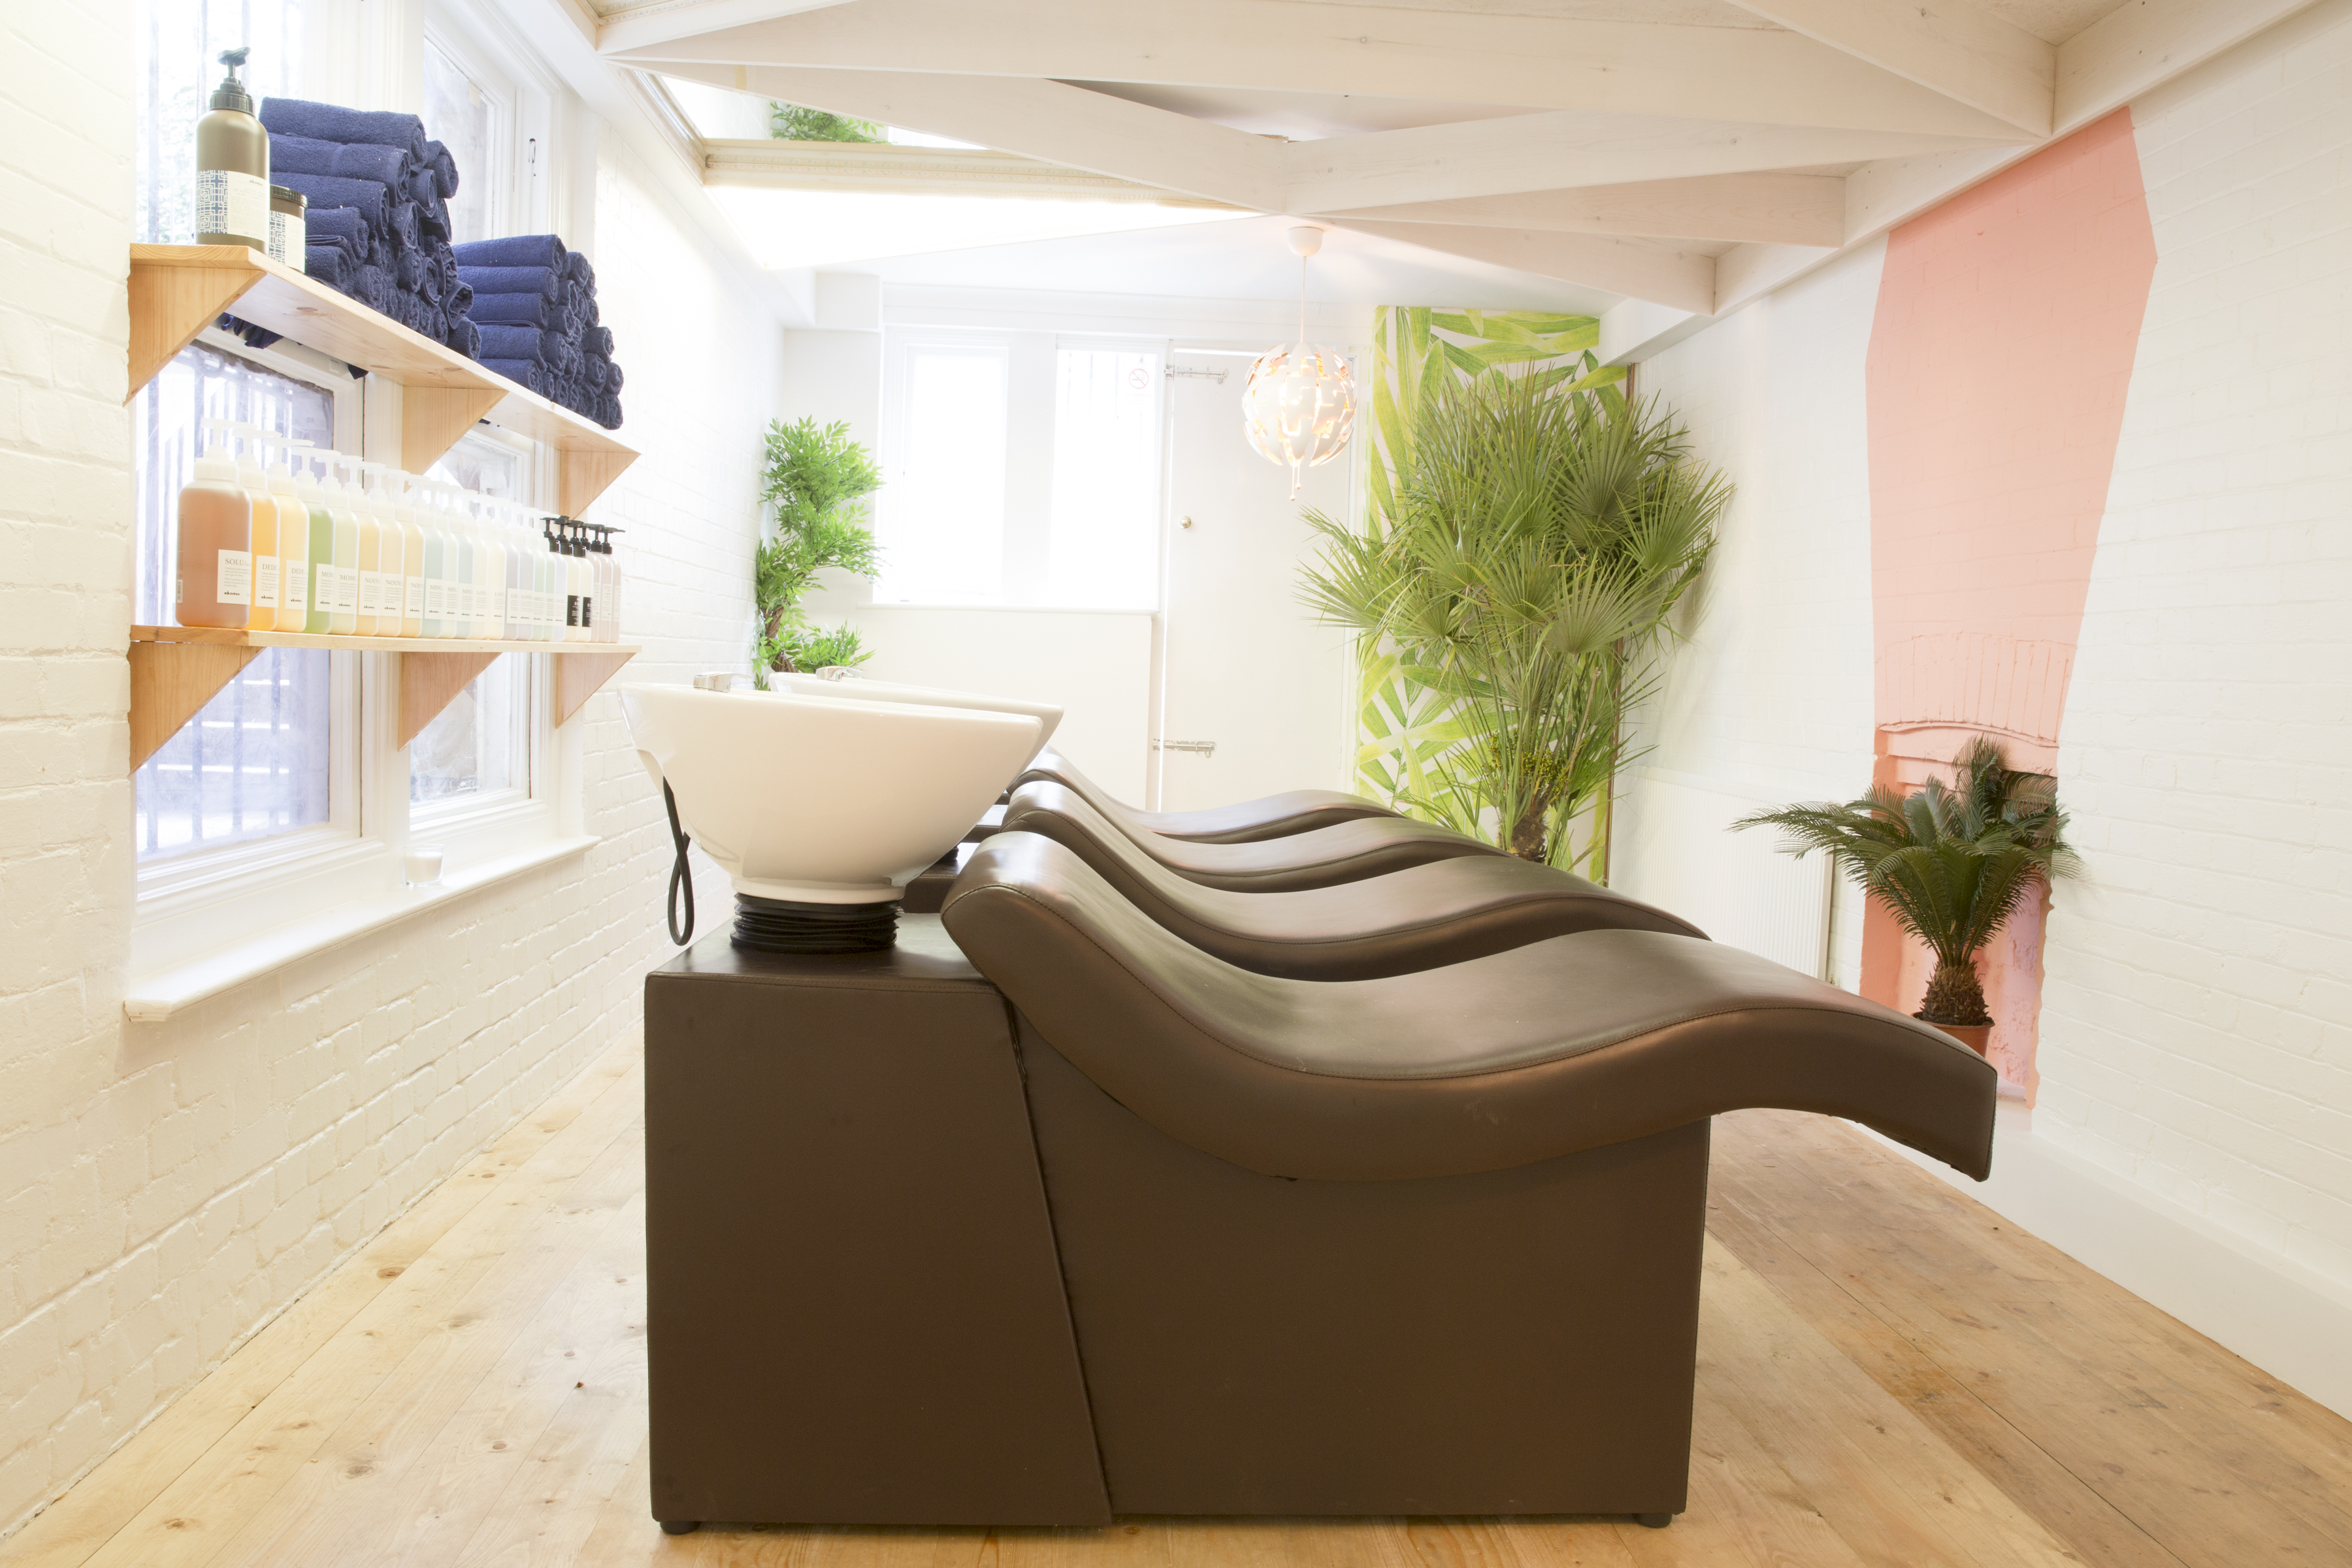 hairdressers in streatham sinks and chairs